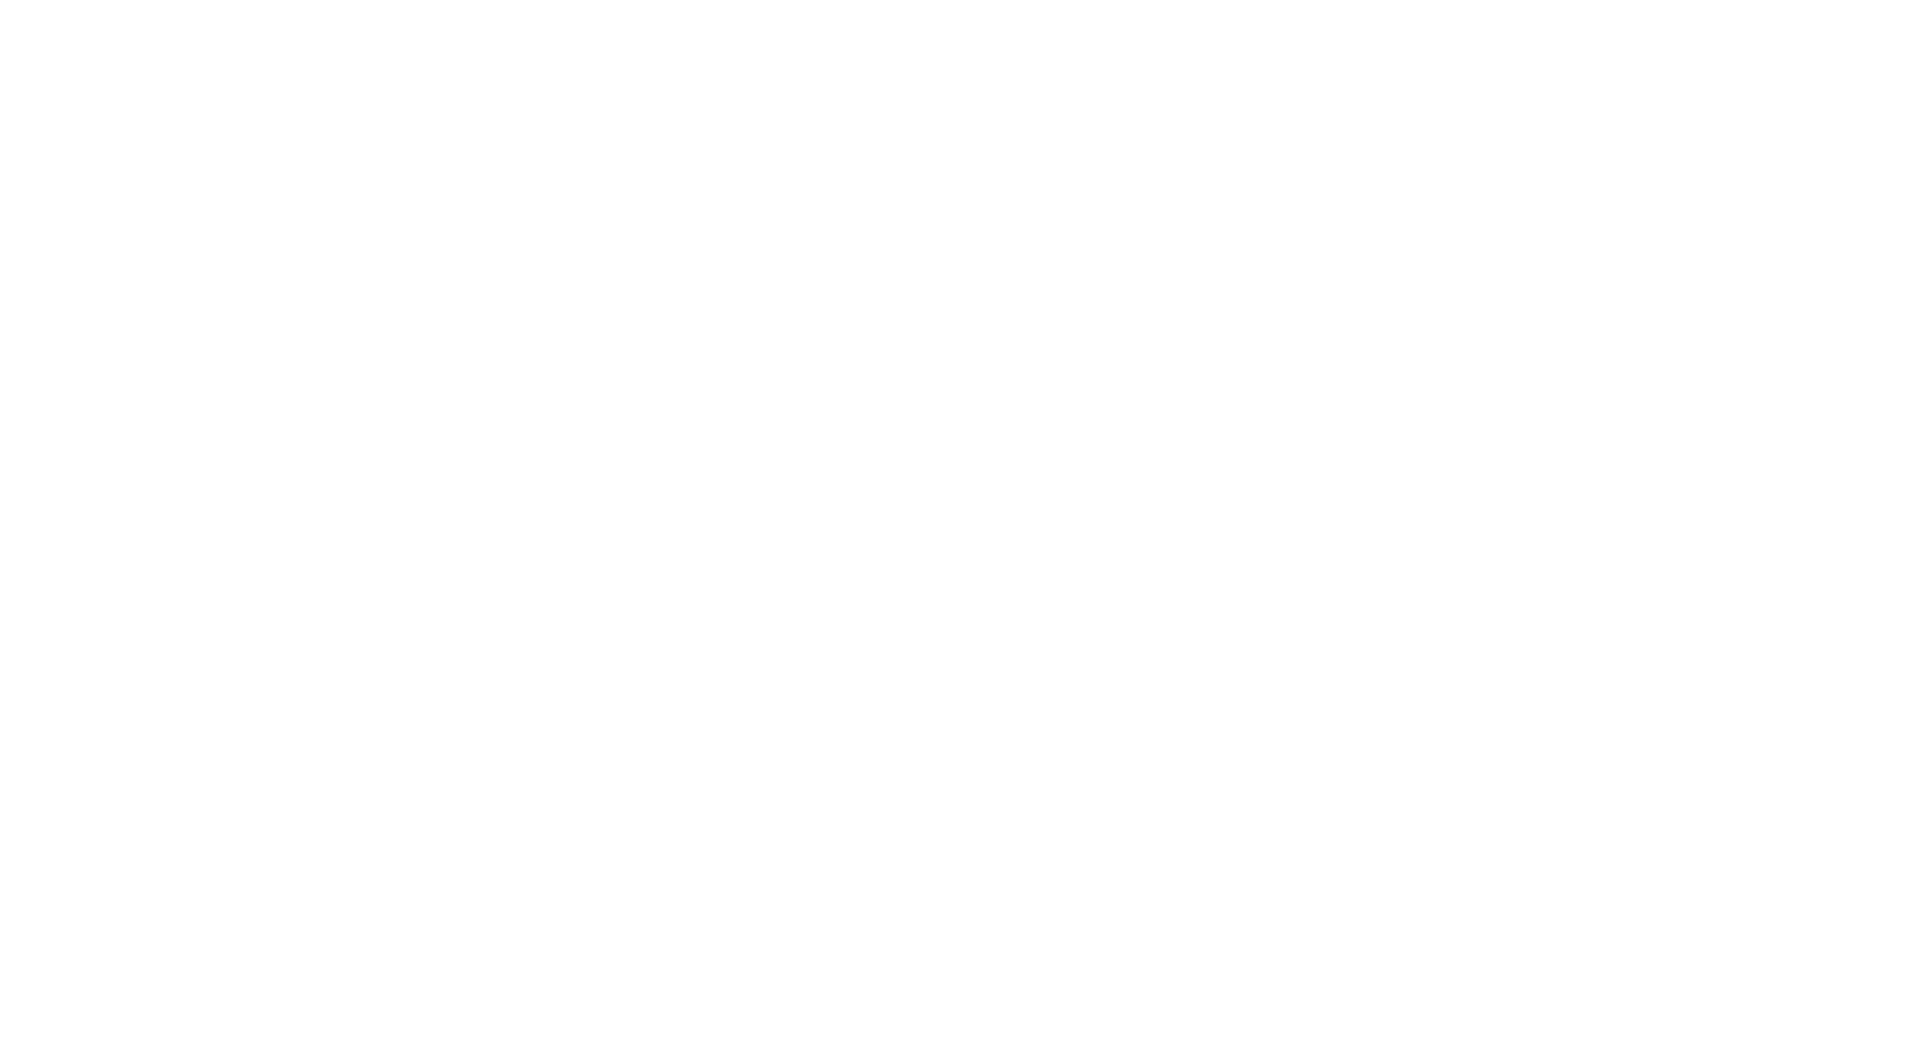 Hammer & Tongs company logo